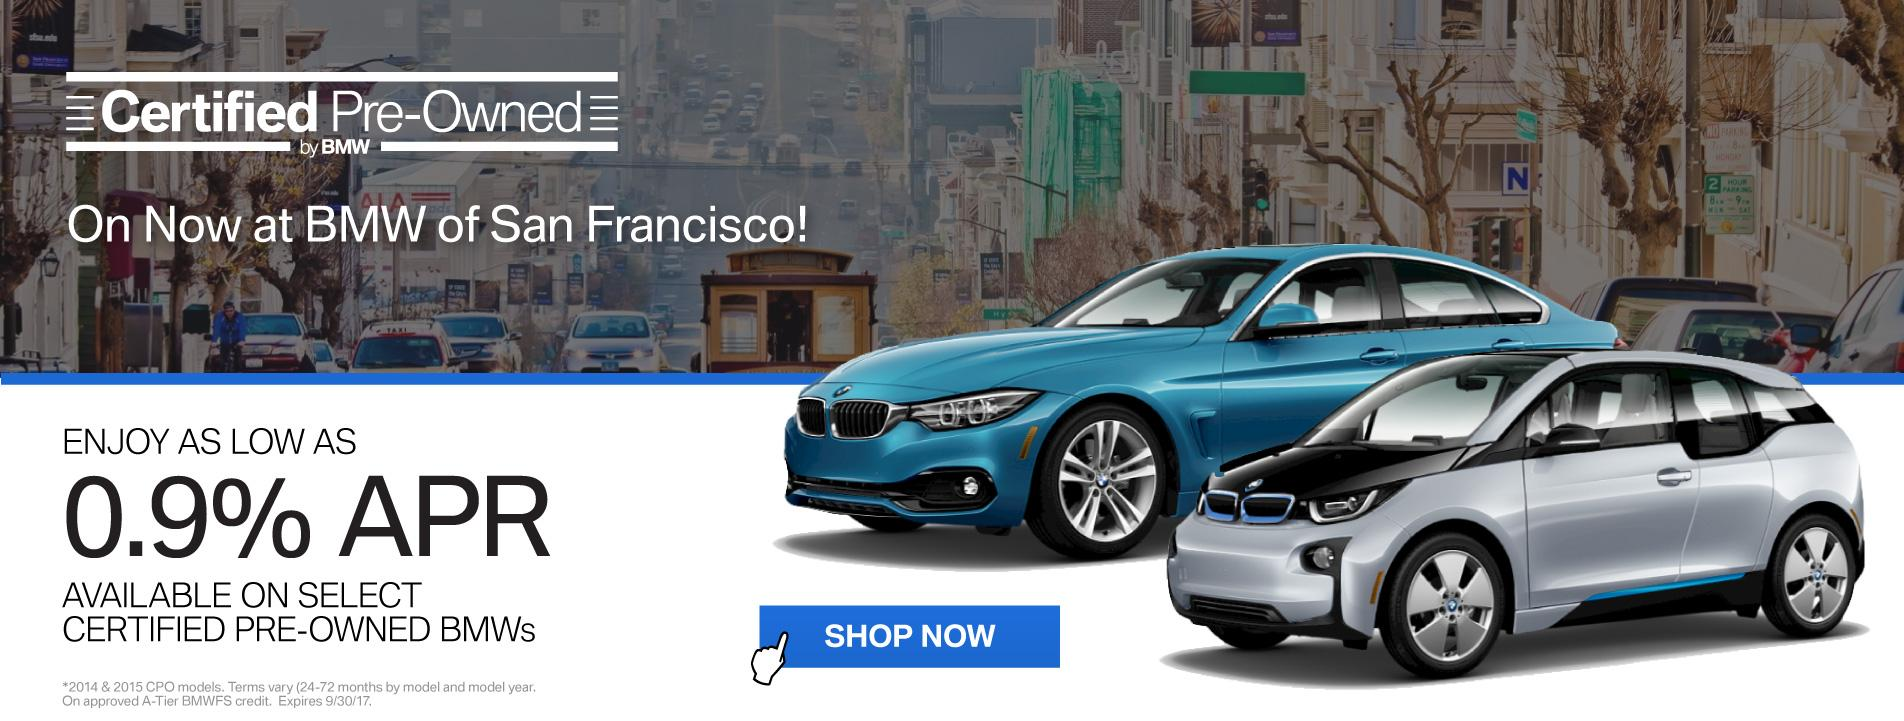 BMWSF CPO Offer